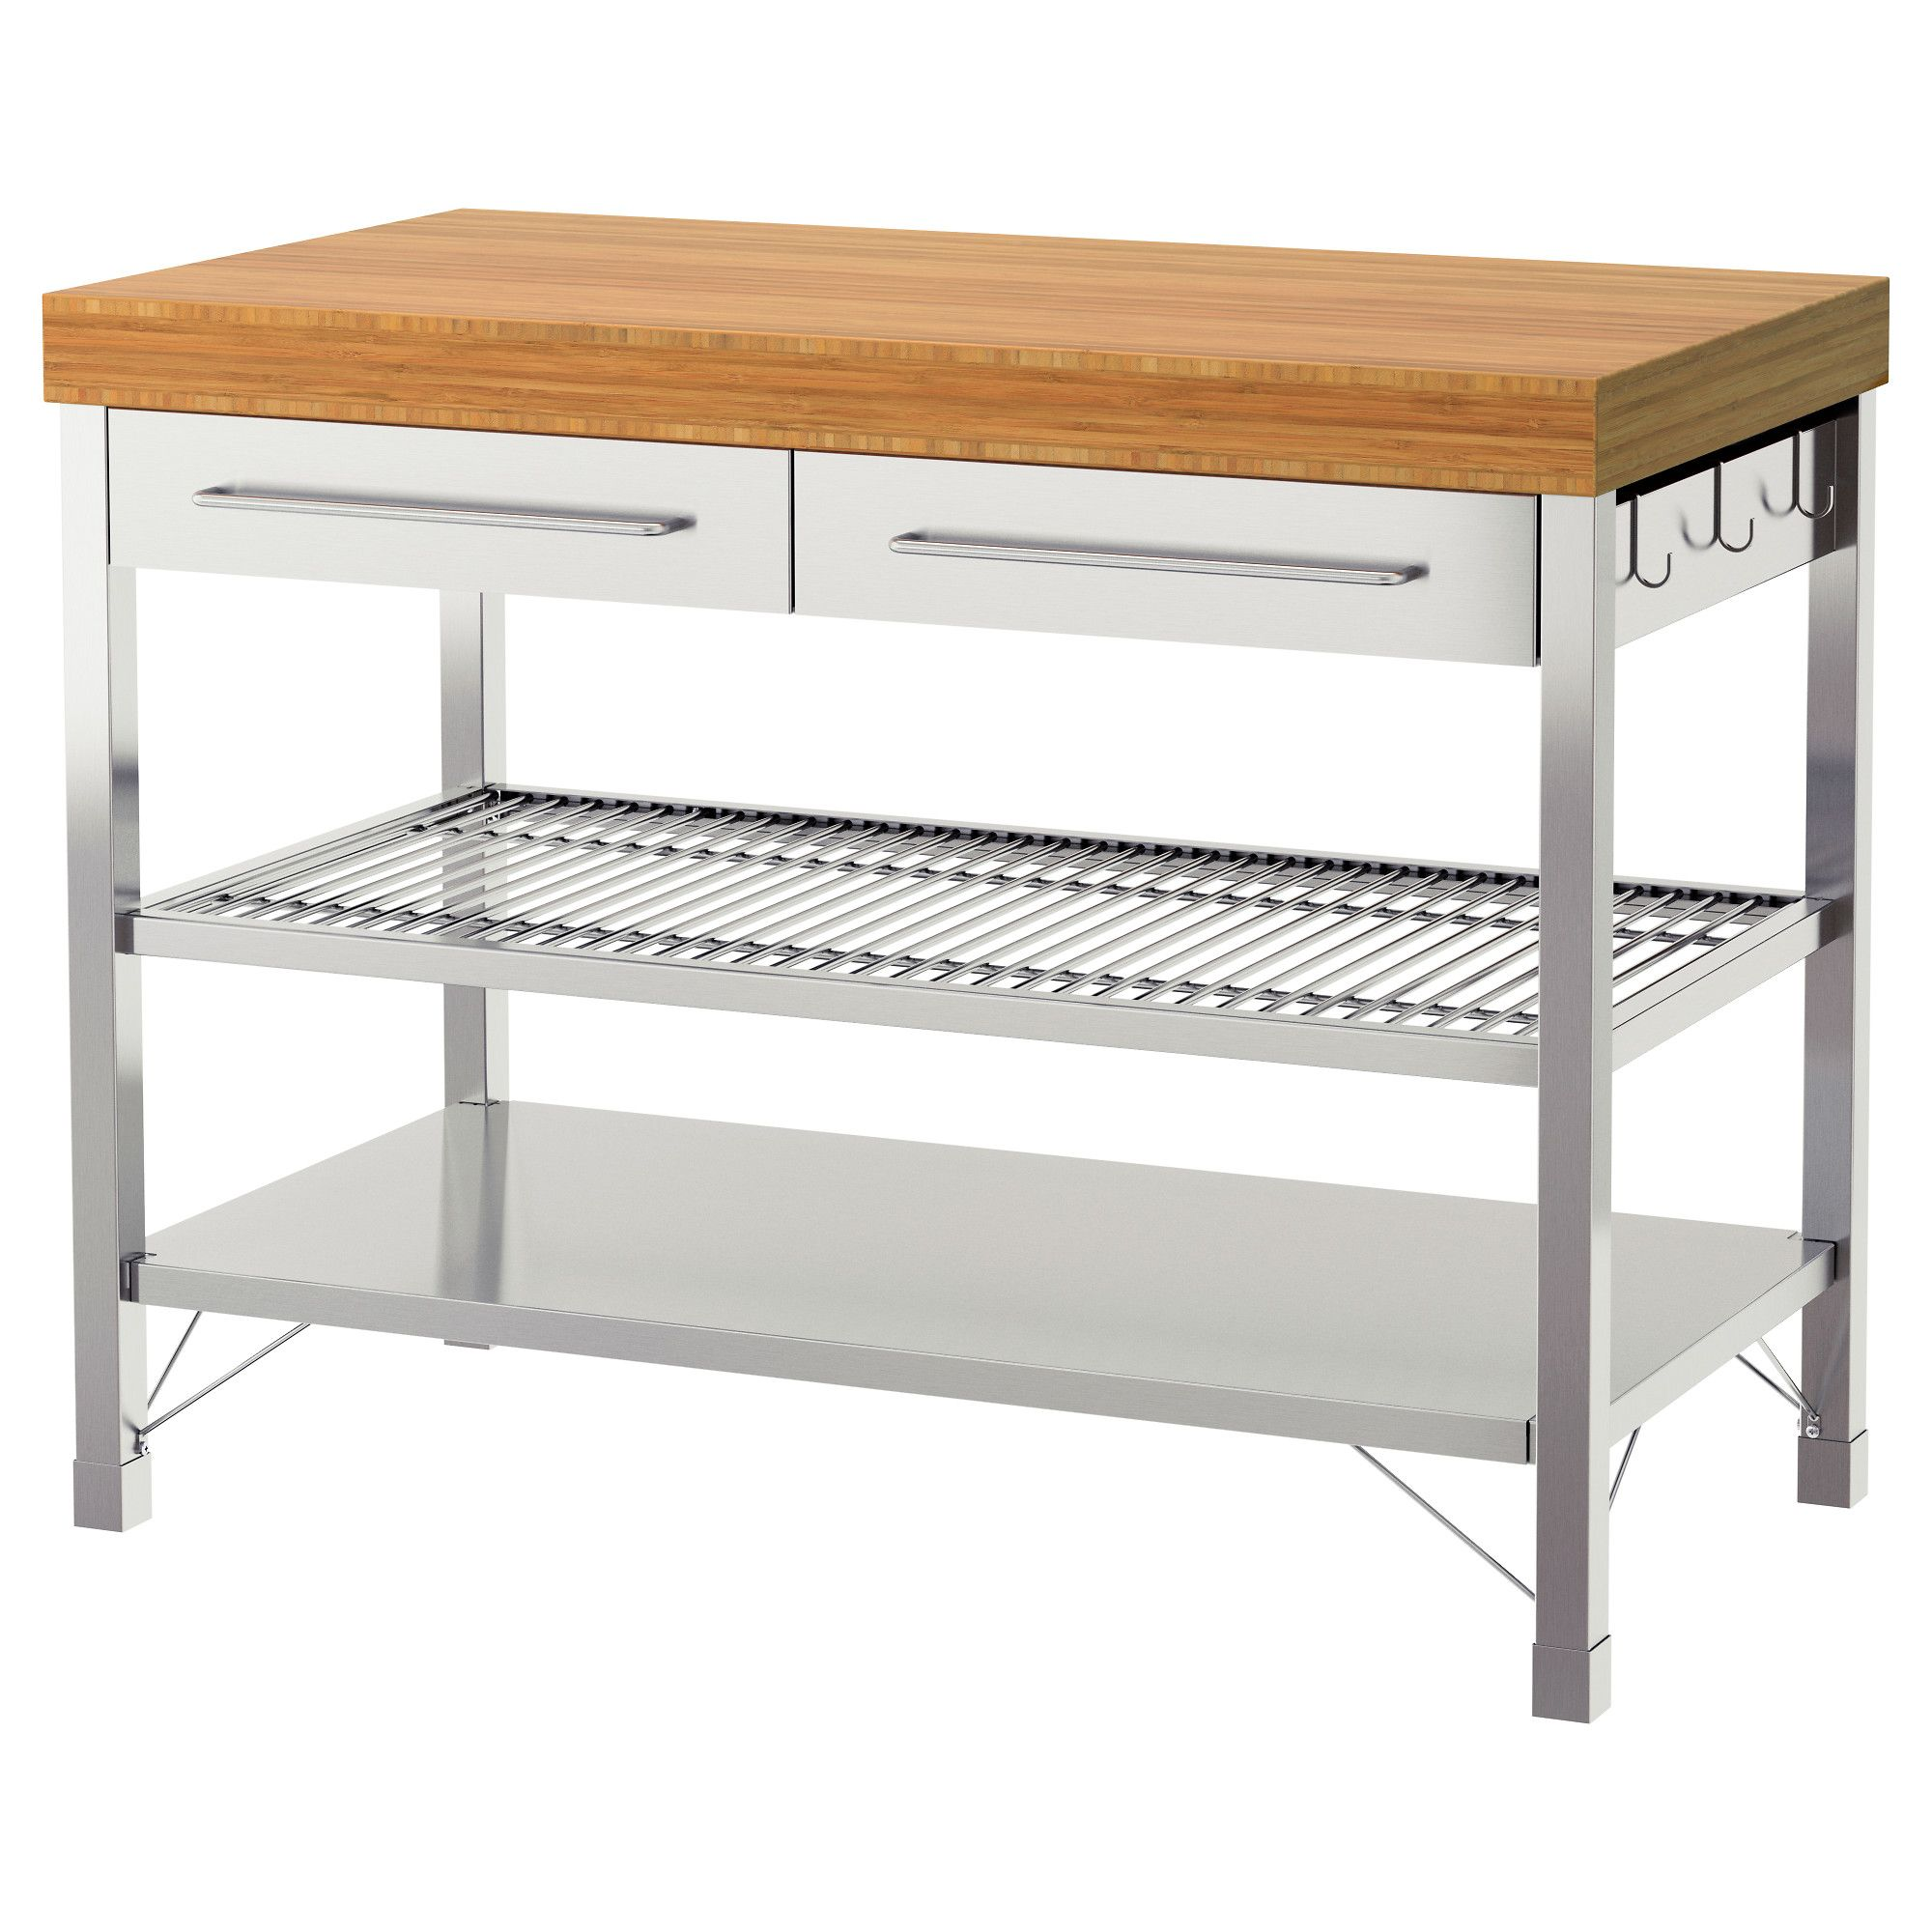 IKEA US - Furniture and Home Furnishings  Ikea kitchen island